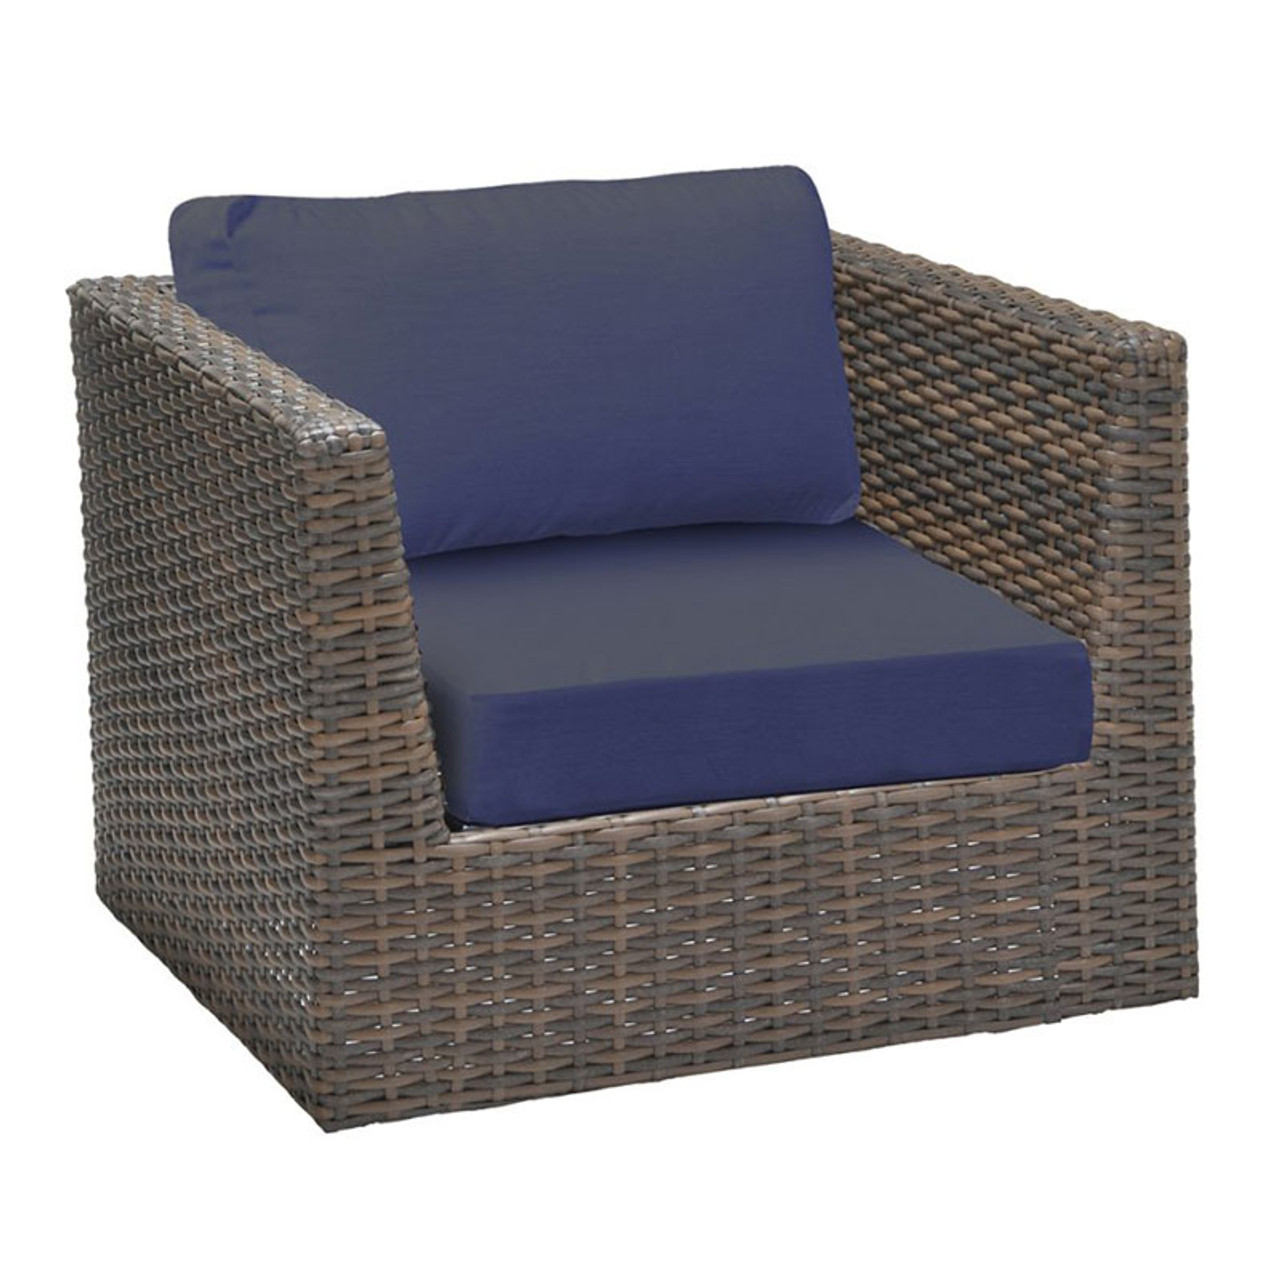 Bellanova Replacement Cushions For Outdoor Chair